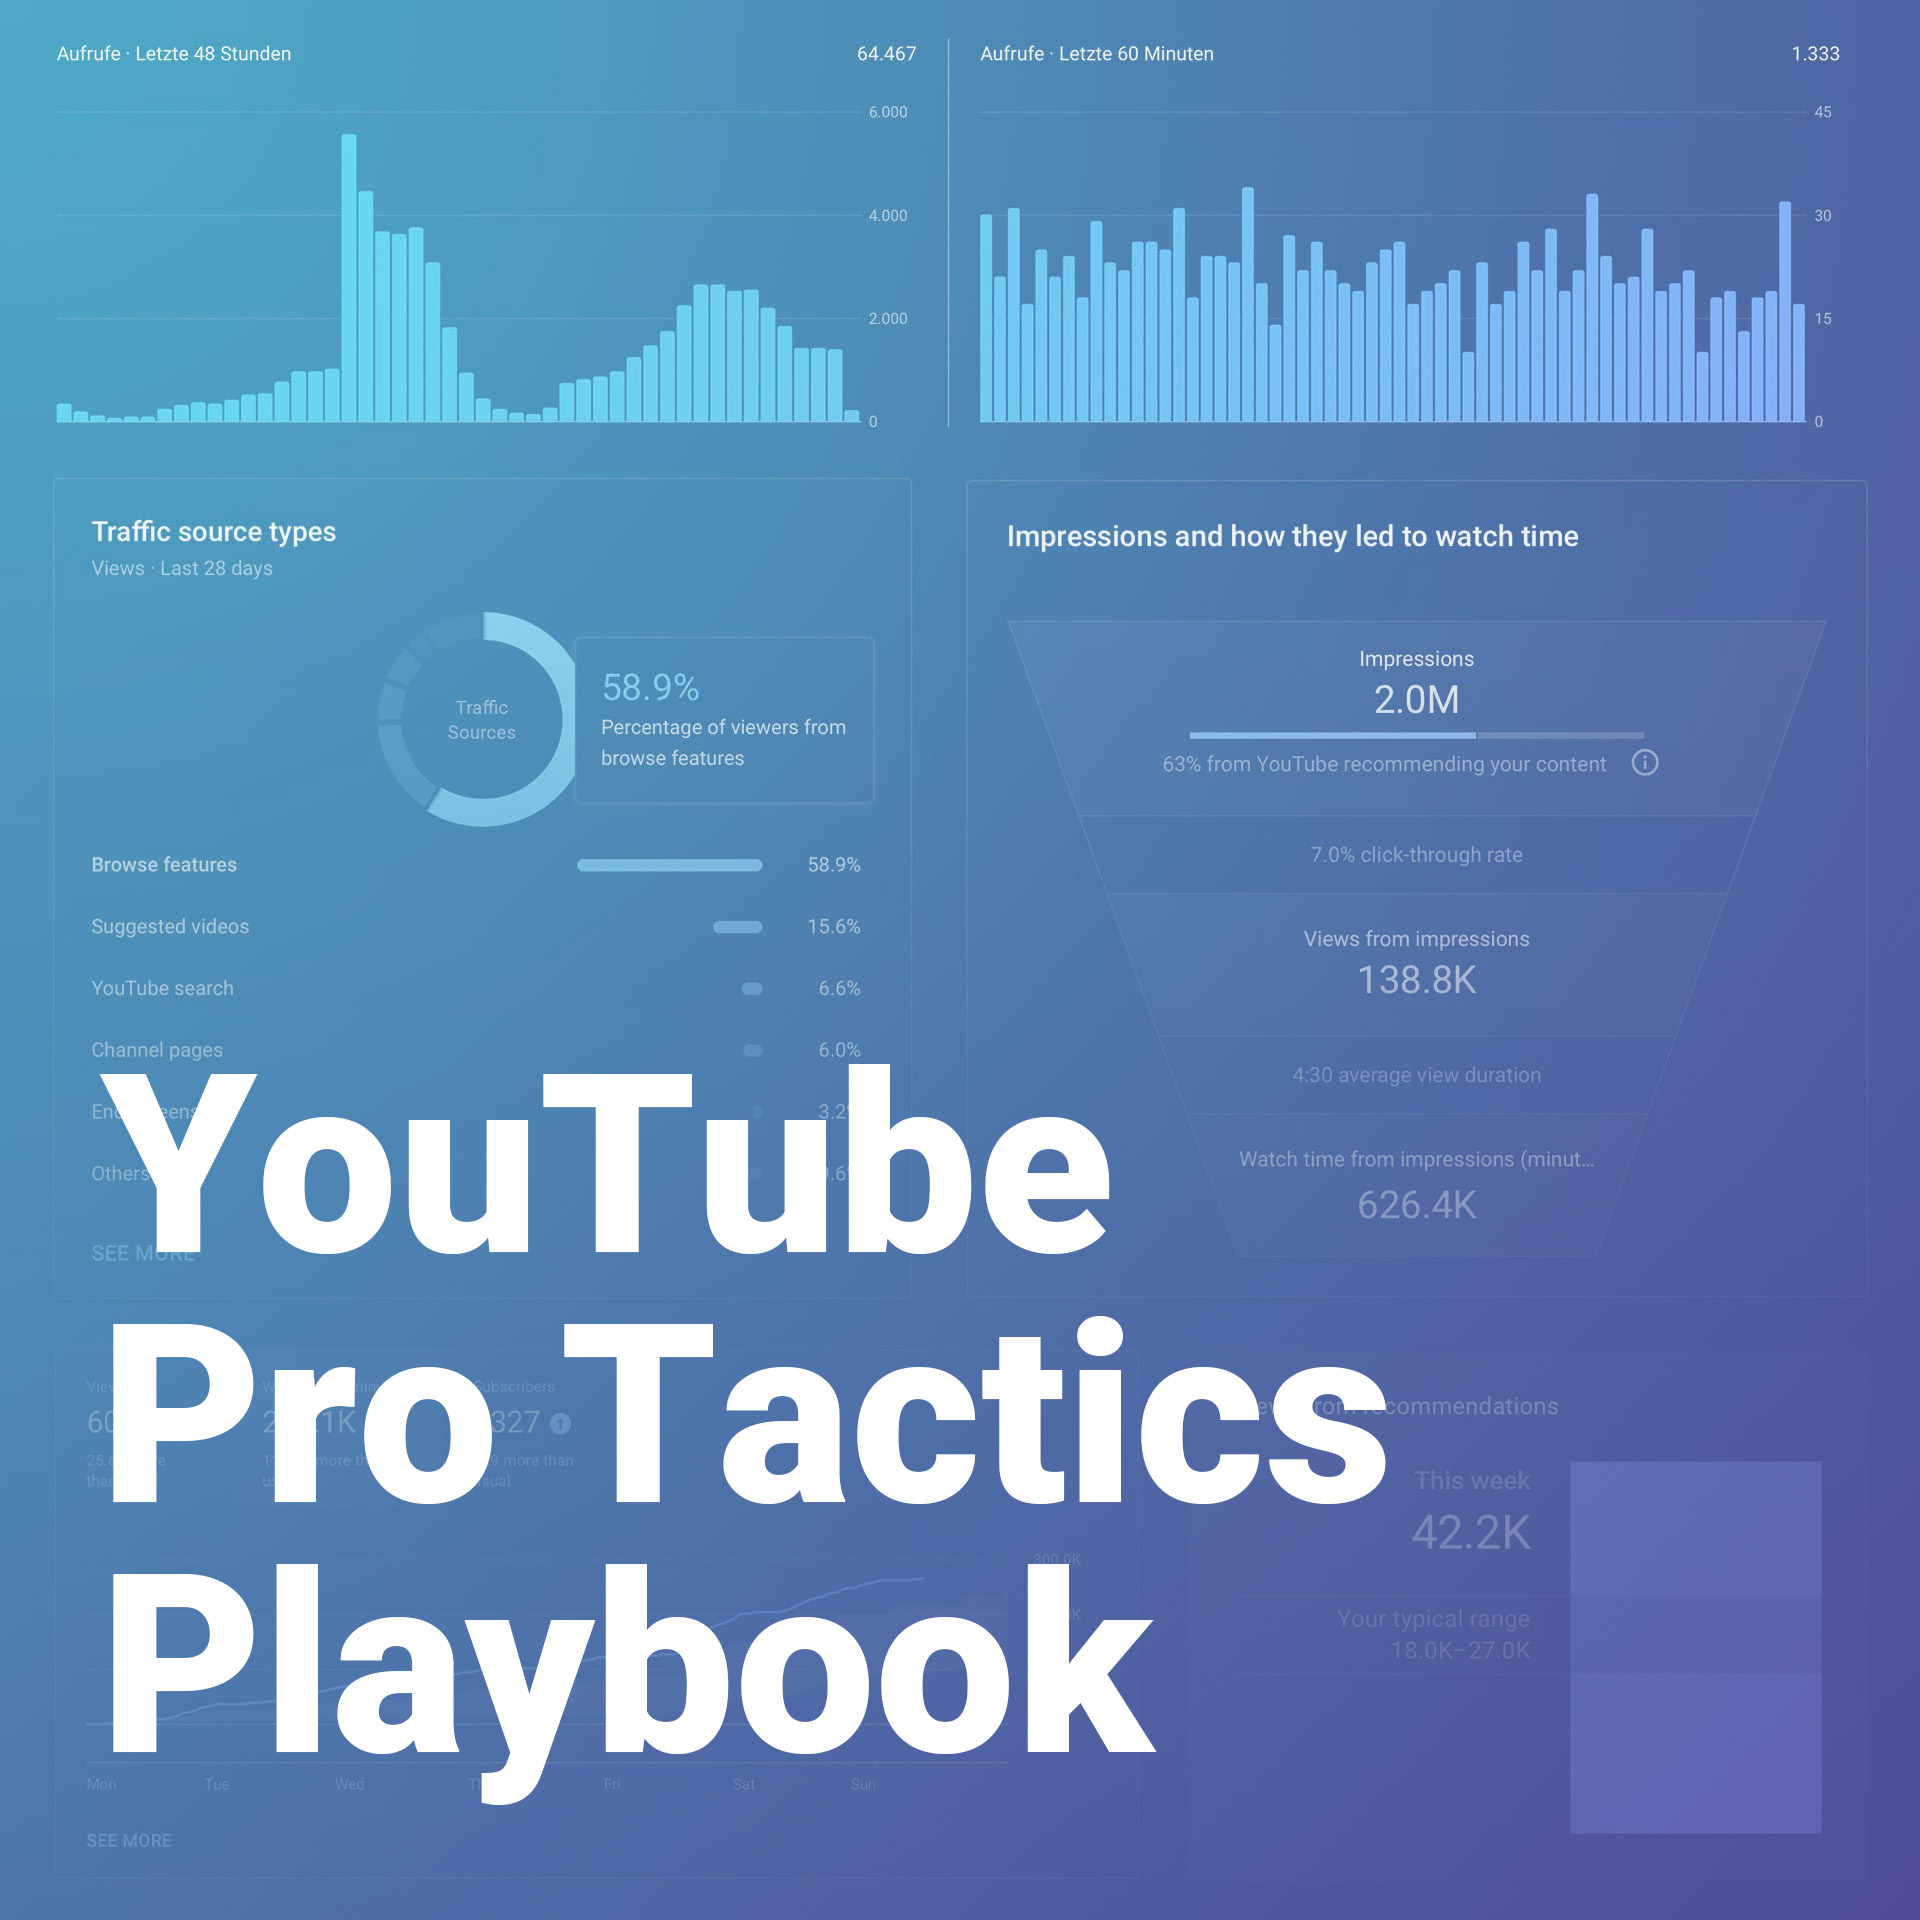 YouTube Pro Tactics Playbook Cover